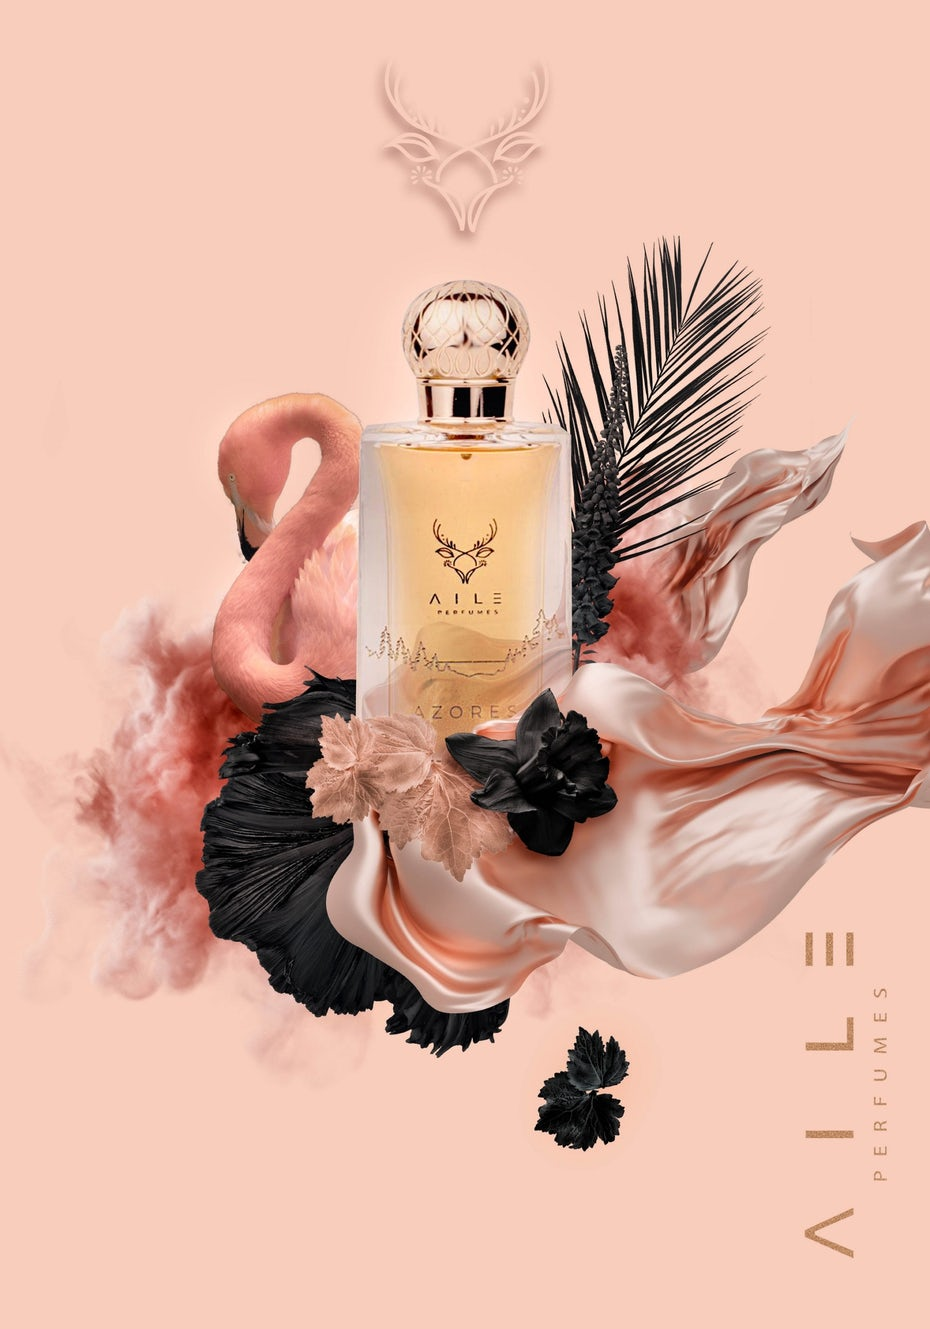 Logo and branding design for a pink perfume product